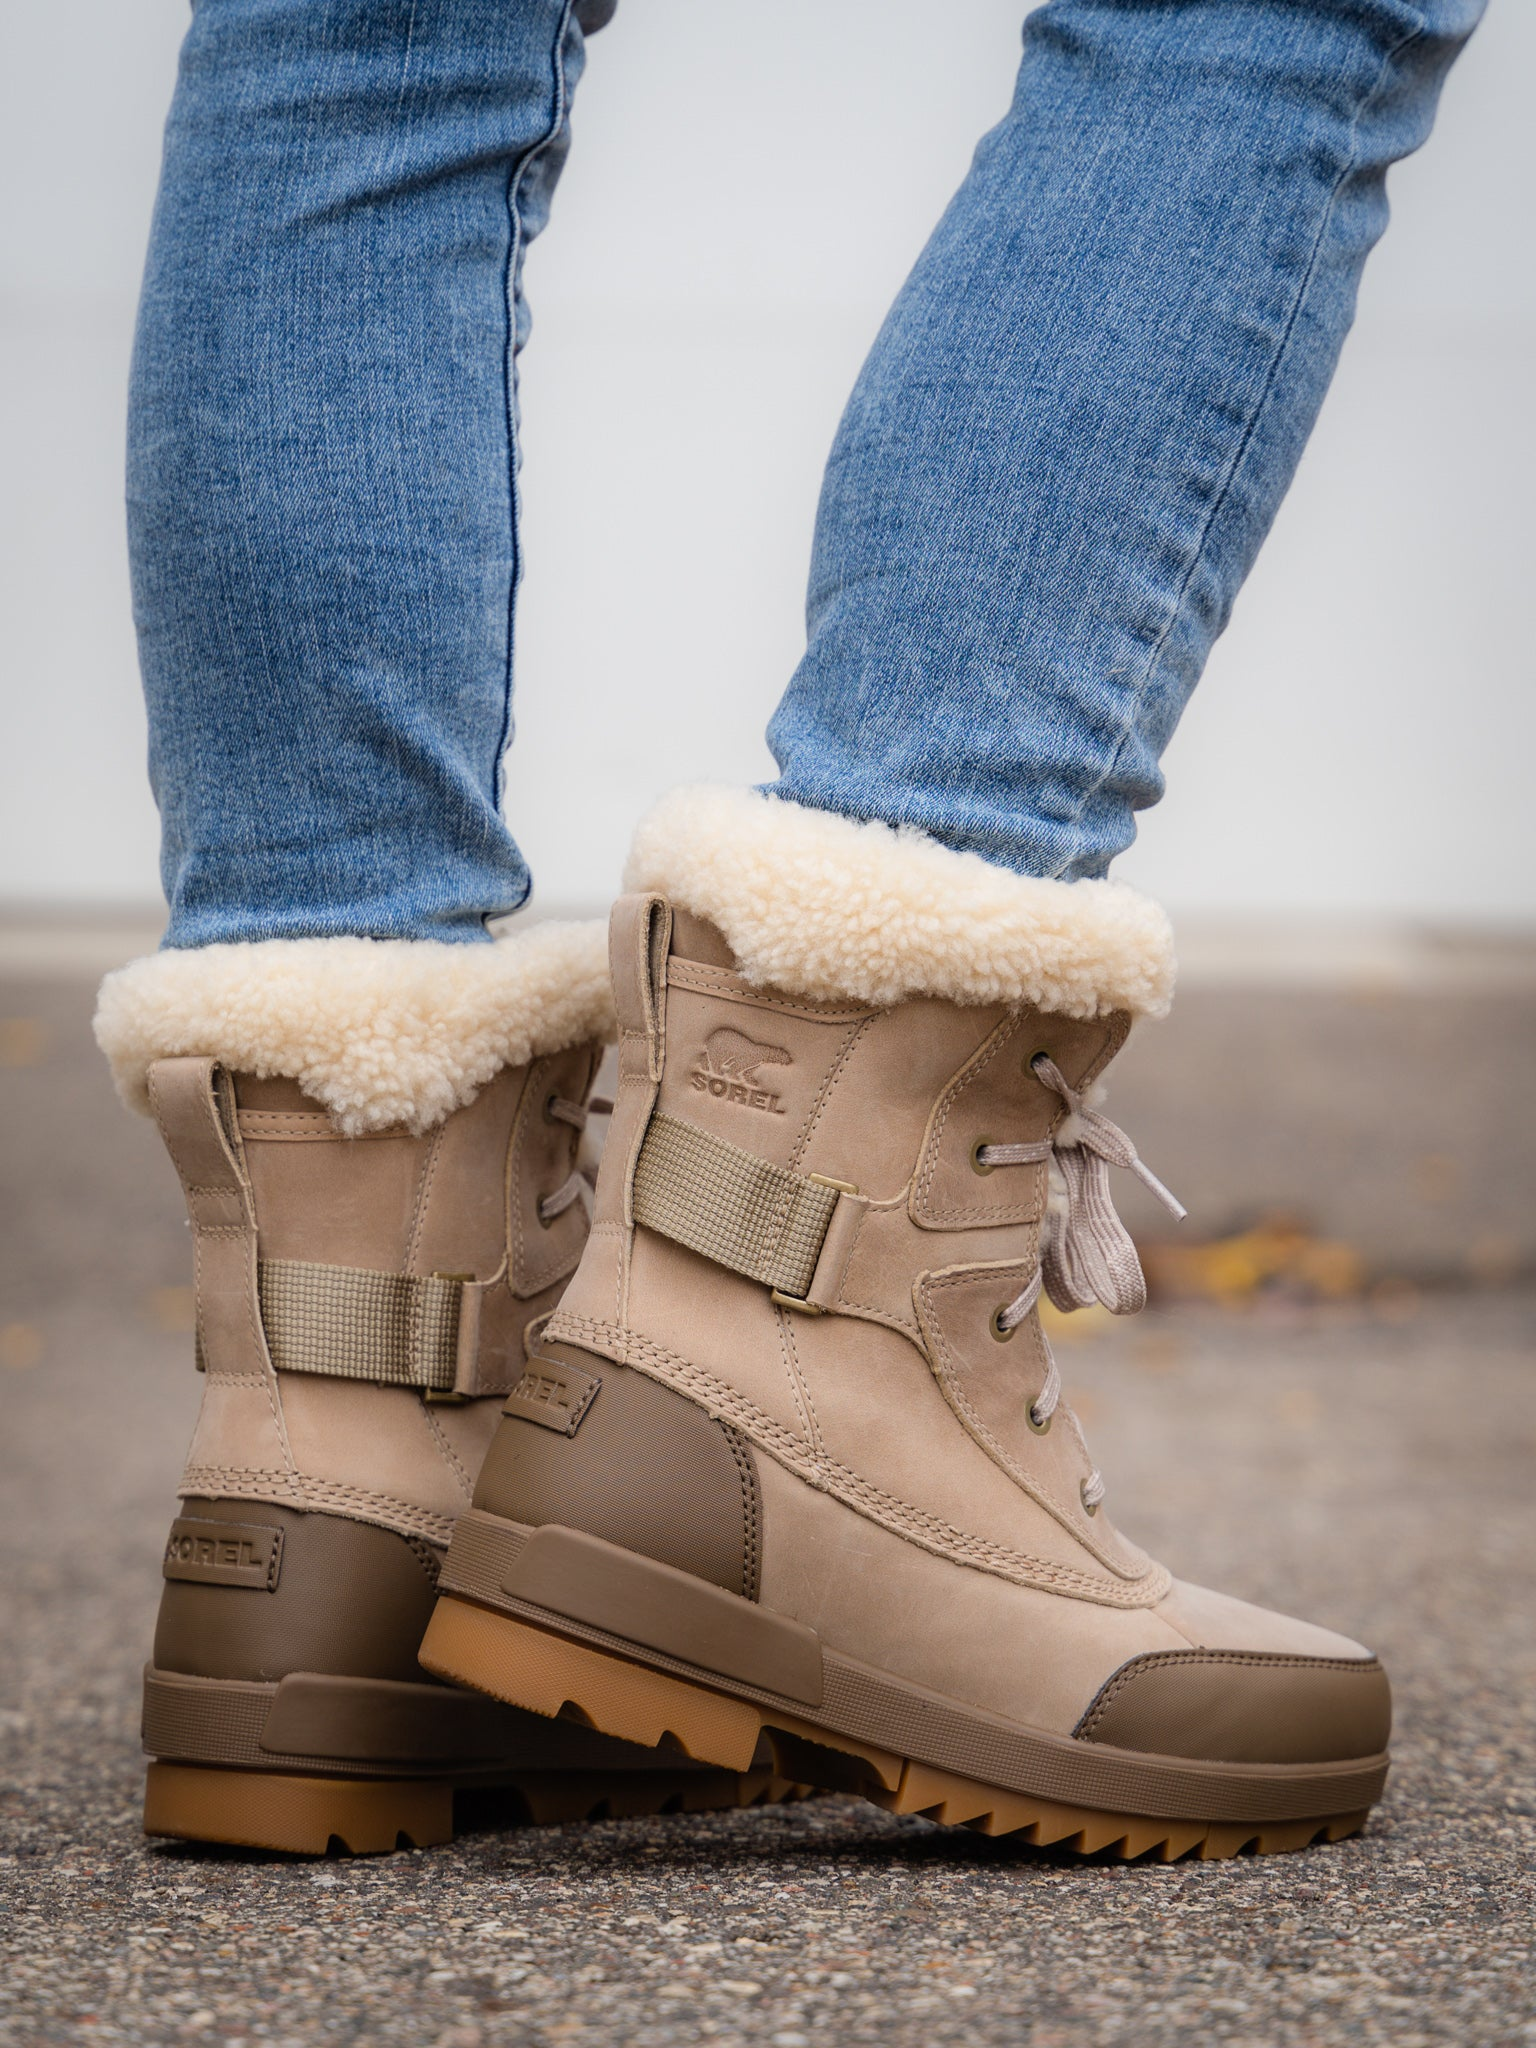 Sorel Tivoli IV Parc Boot in Sandy Tan